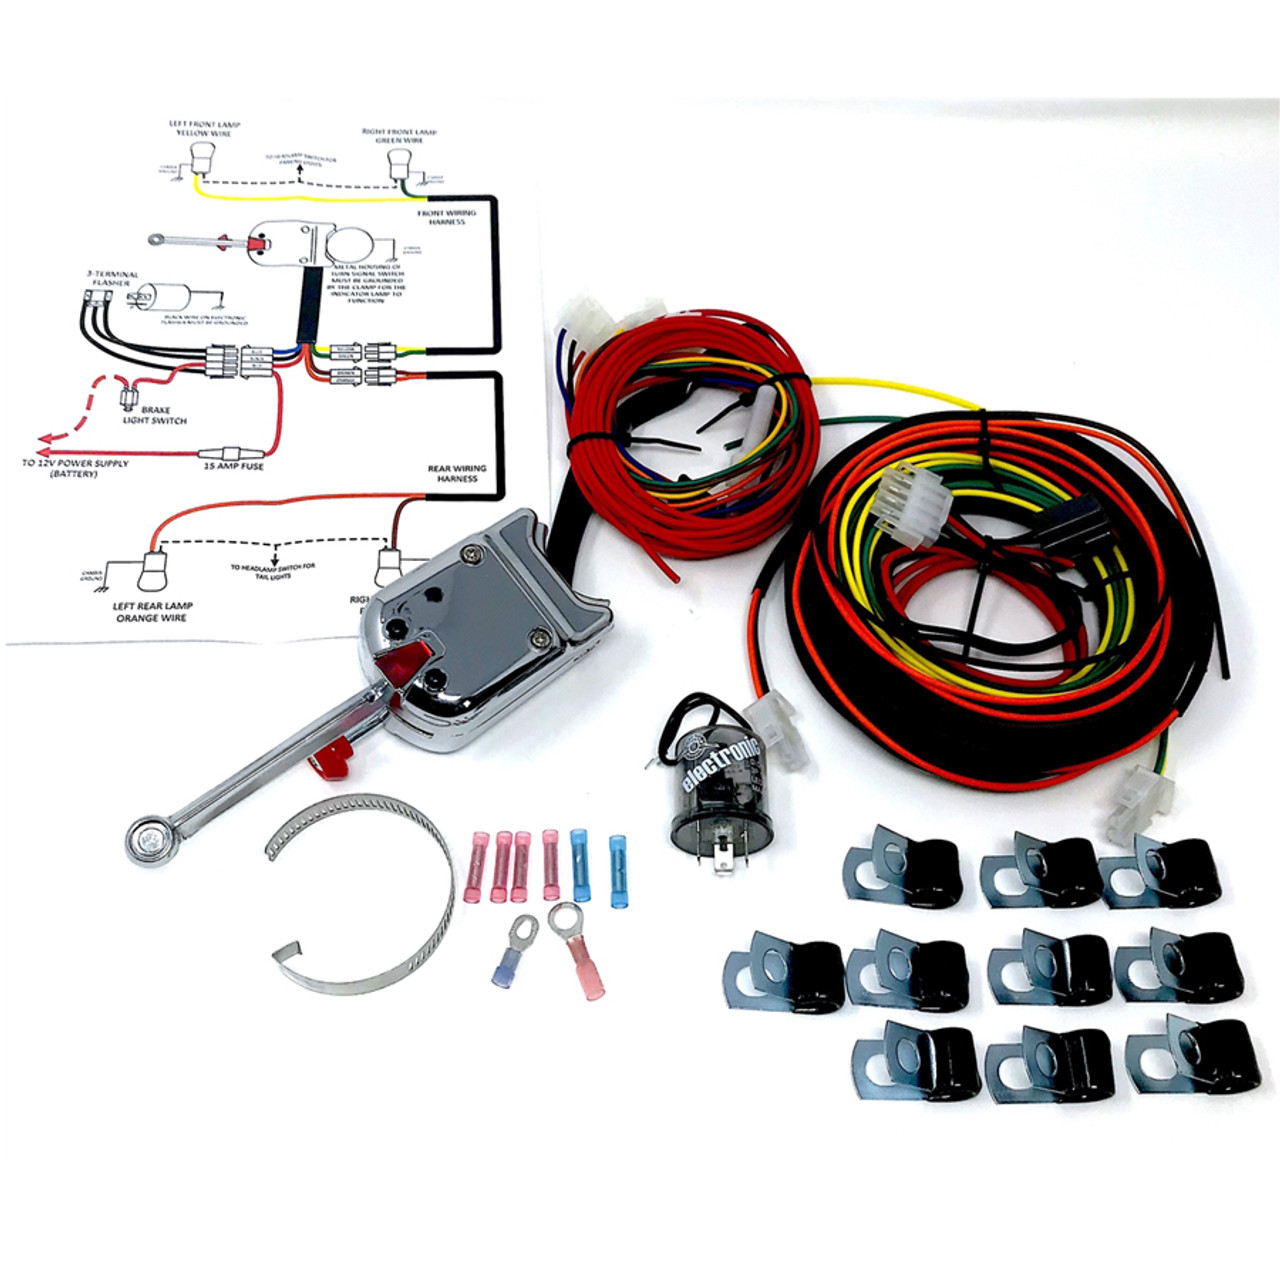 Turn Signal Switch and Complete Wiring kit  12 volts - TS01